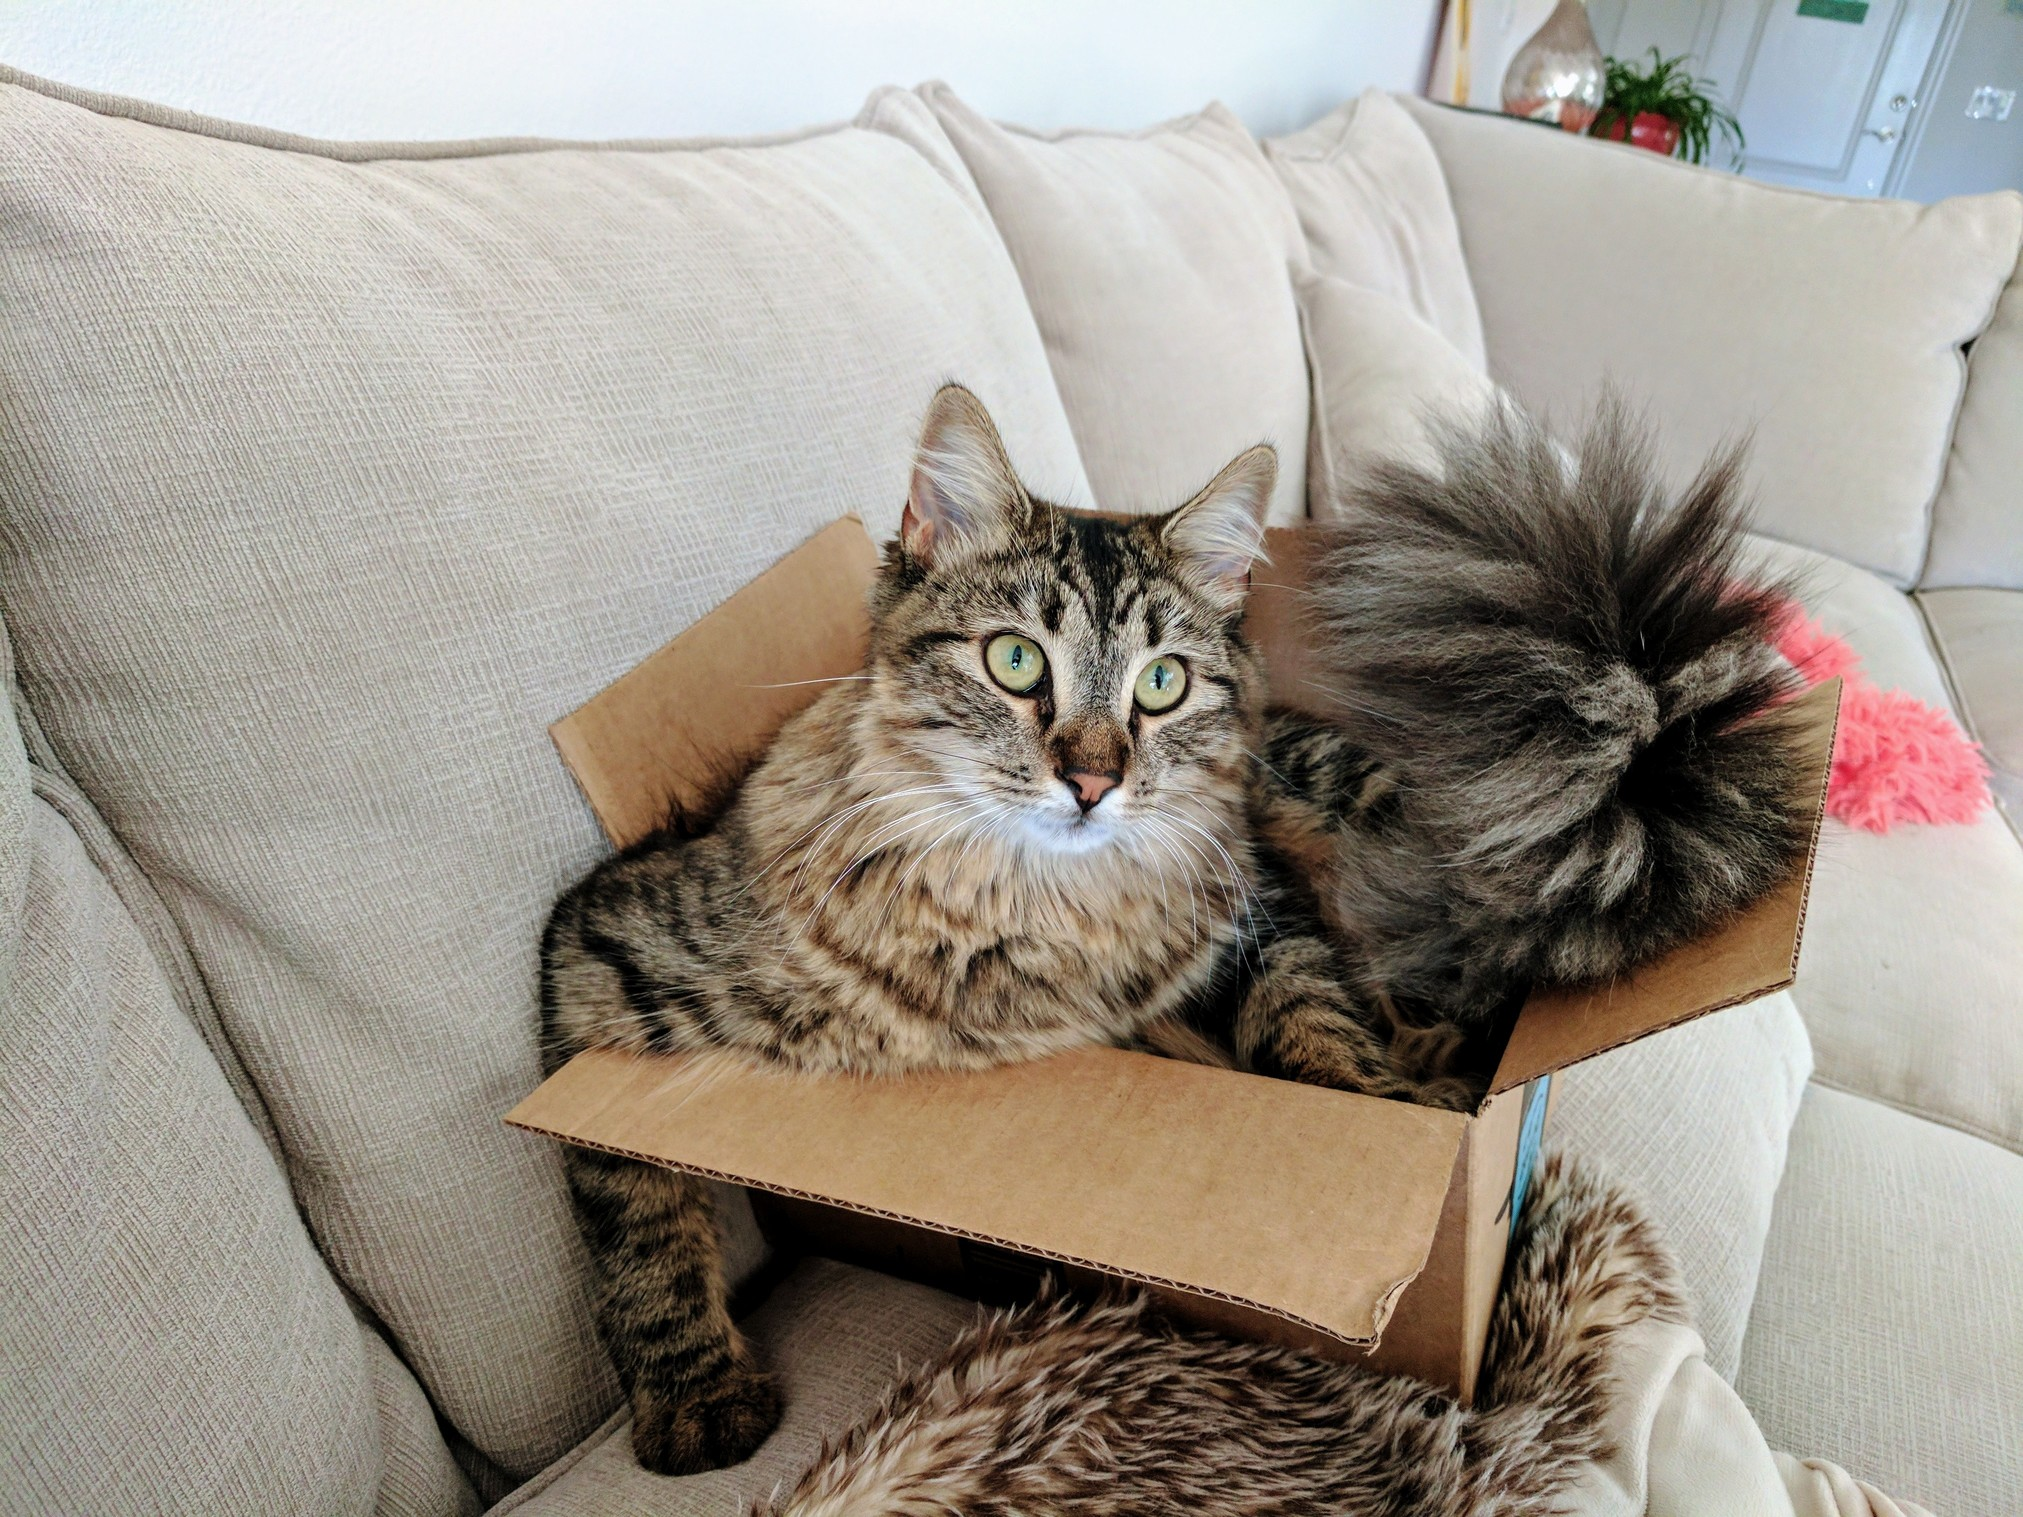 When youre too big for the box but you just really dont care.